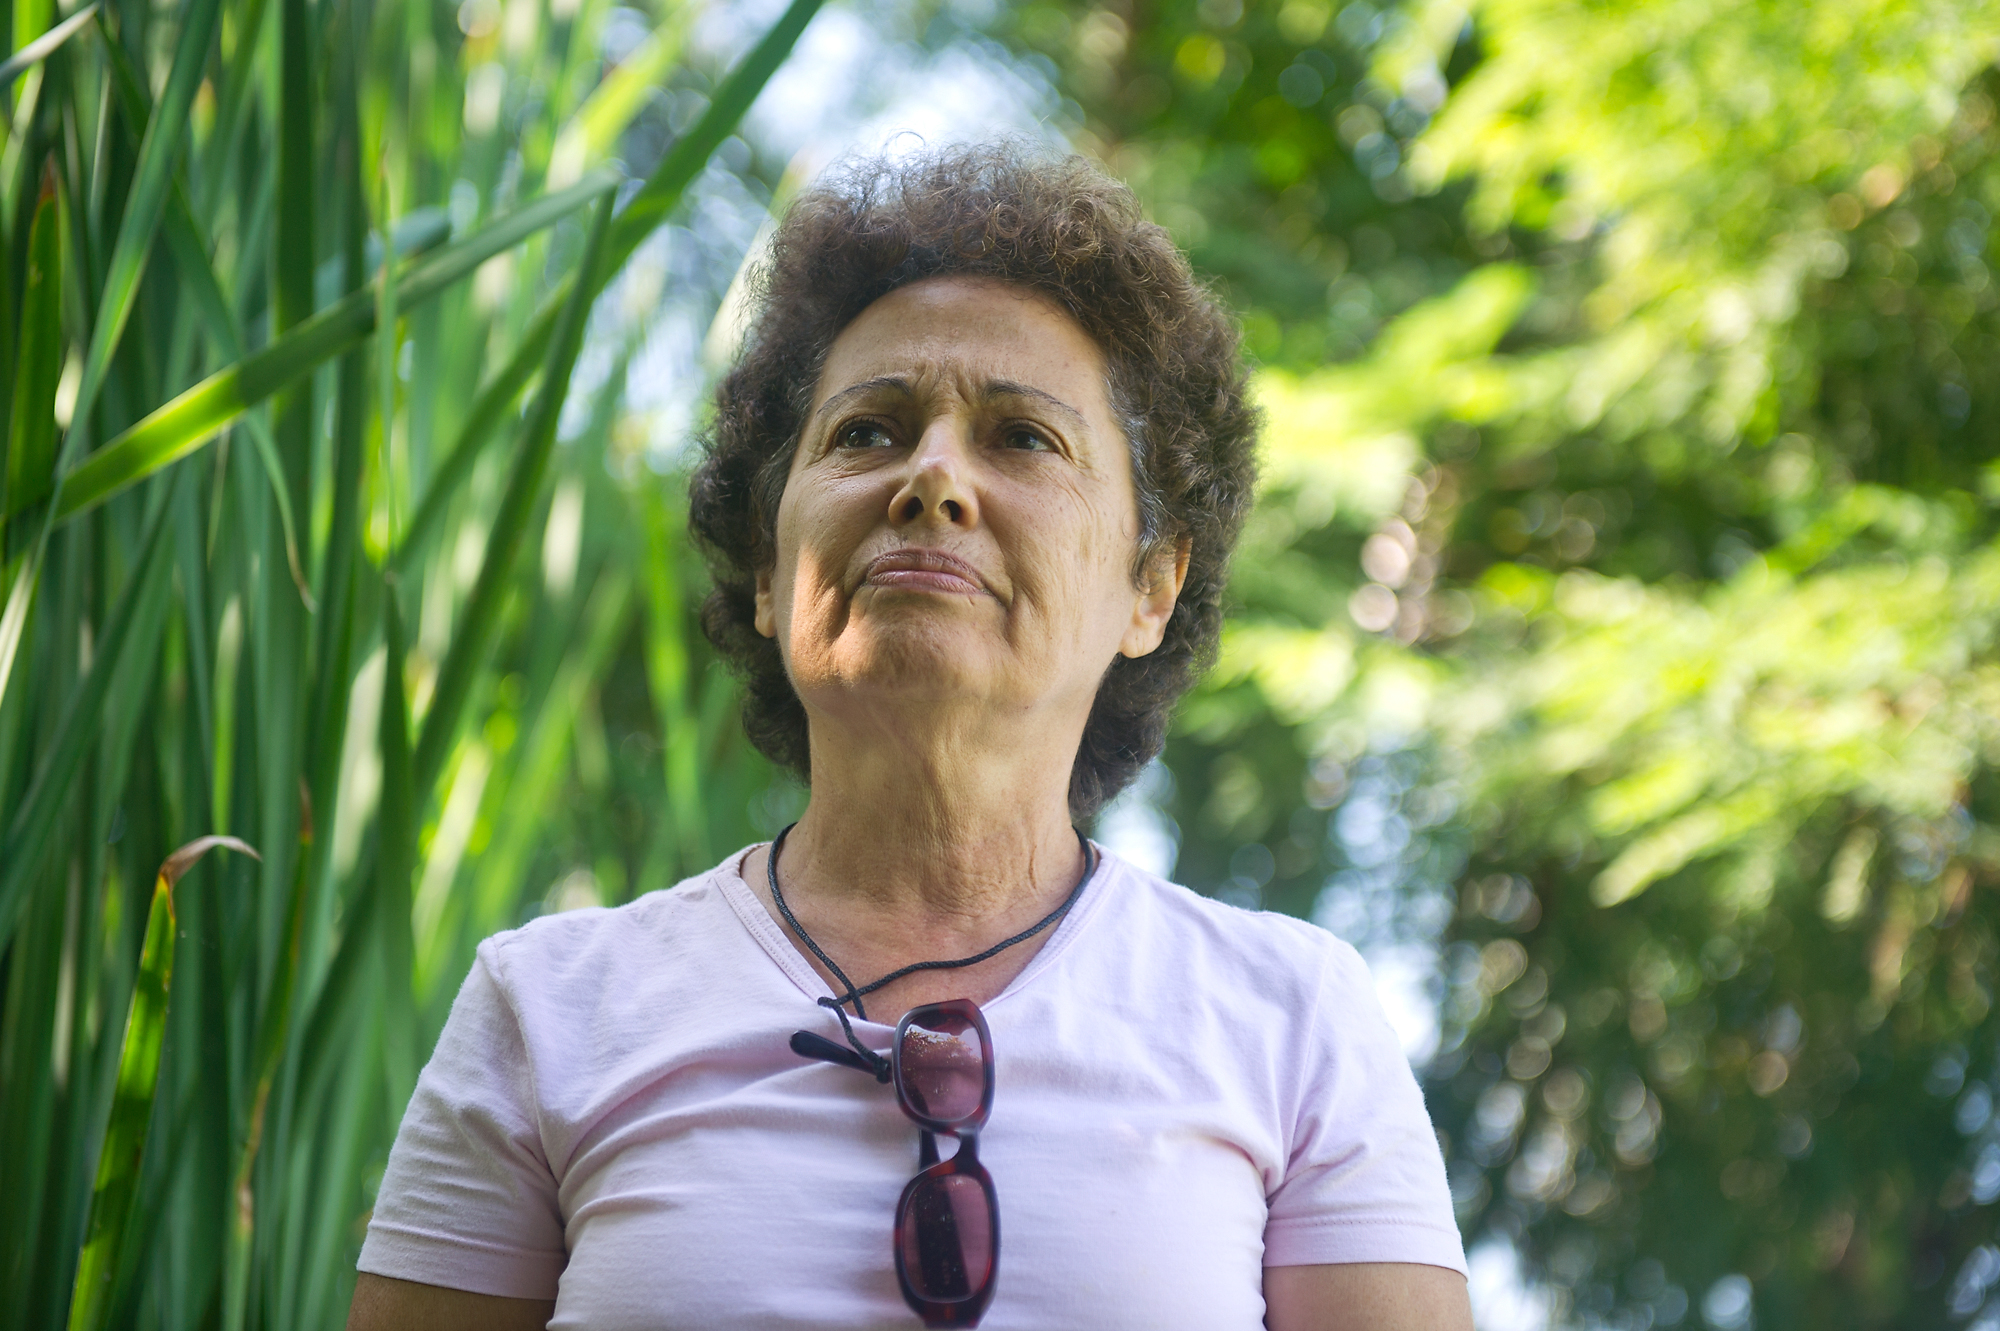 Inalva Mendes Brito, 65, takes a moment in her backyard in Vila Autodromo by the lagoon, which is heavily polluted.